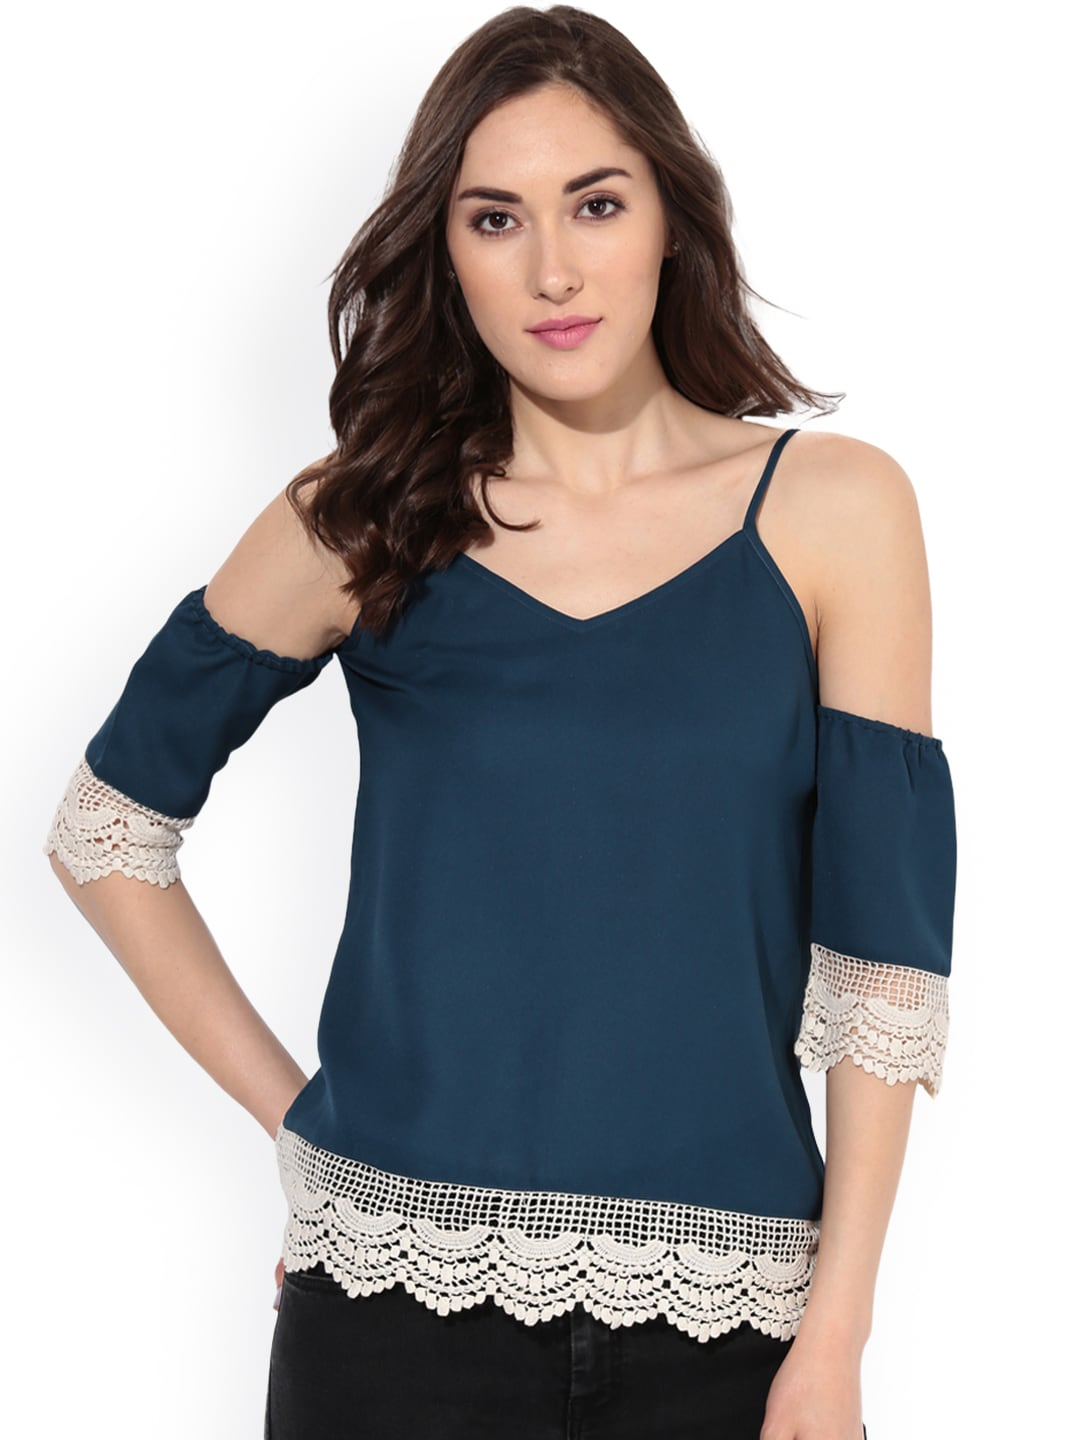 b6e646e69a7ae5 Cold Shoulder Tops - Buy Cold Shoulder Tops for Women Online - Myntra